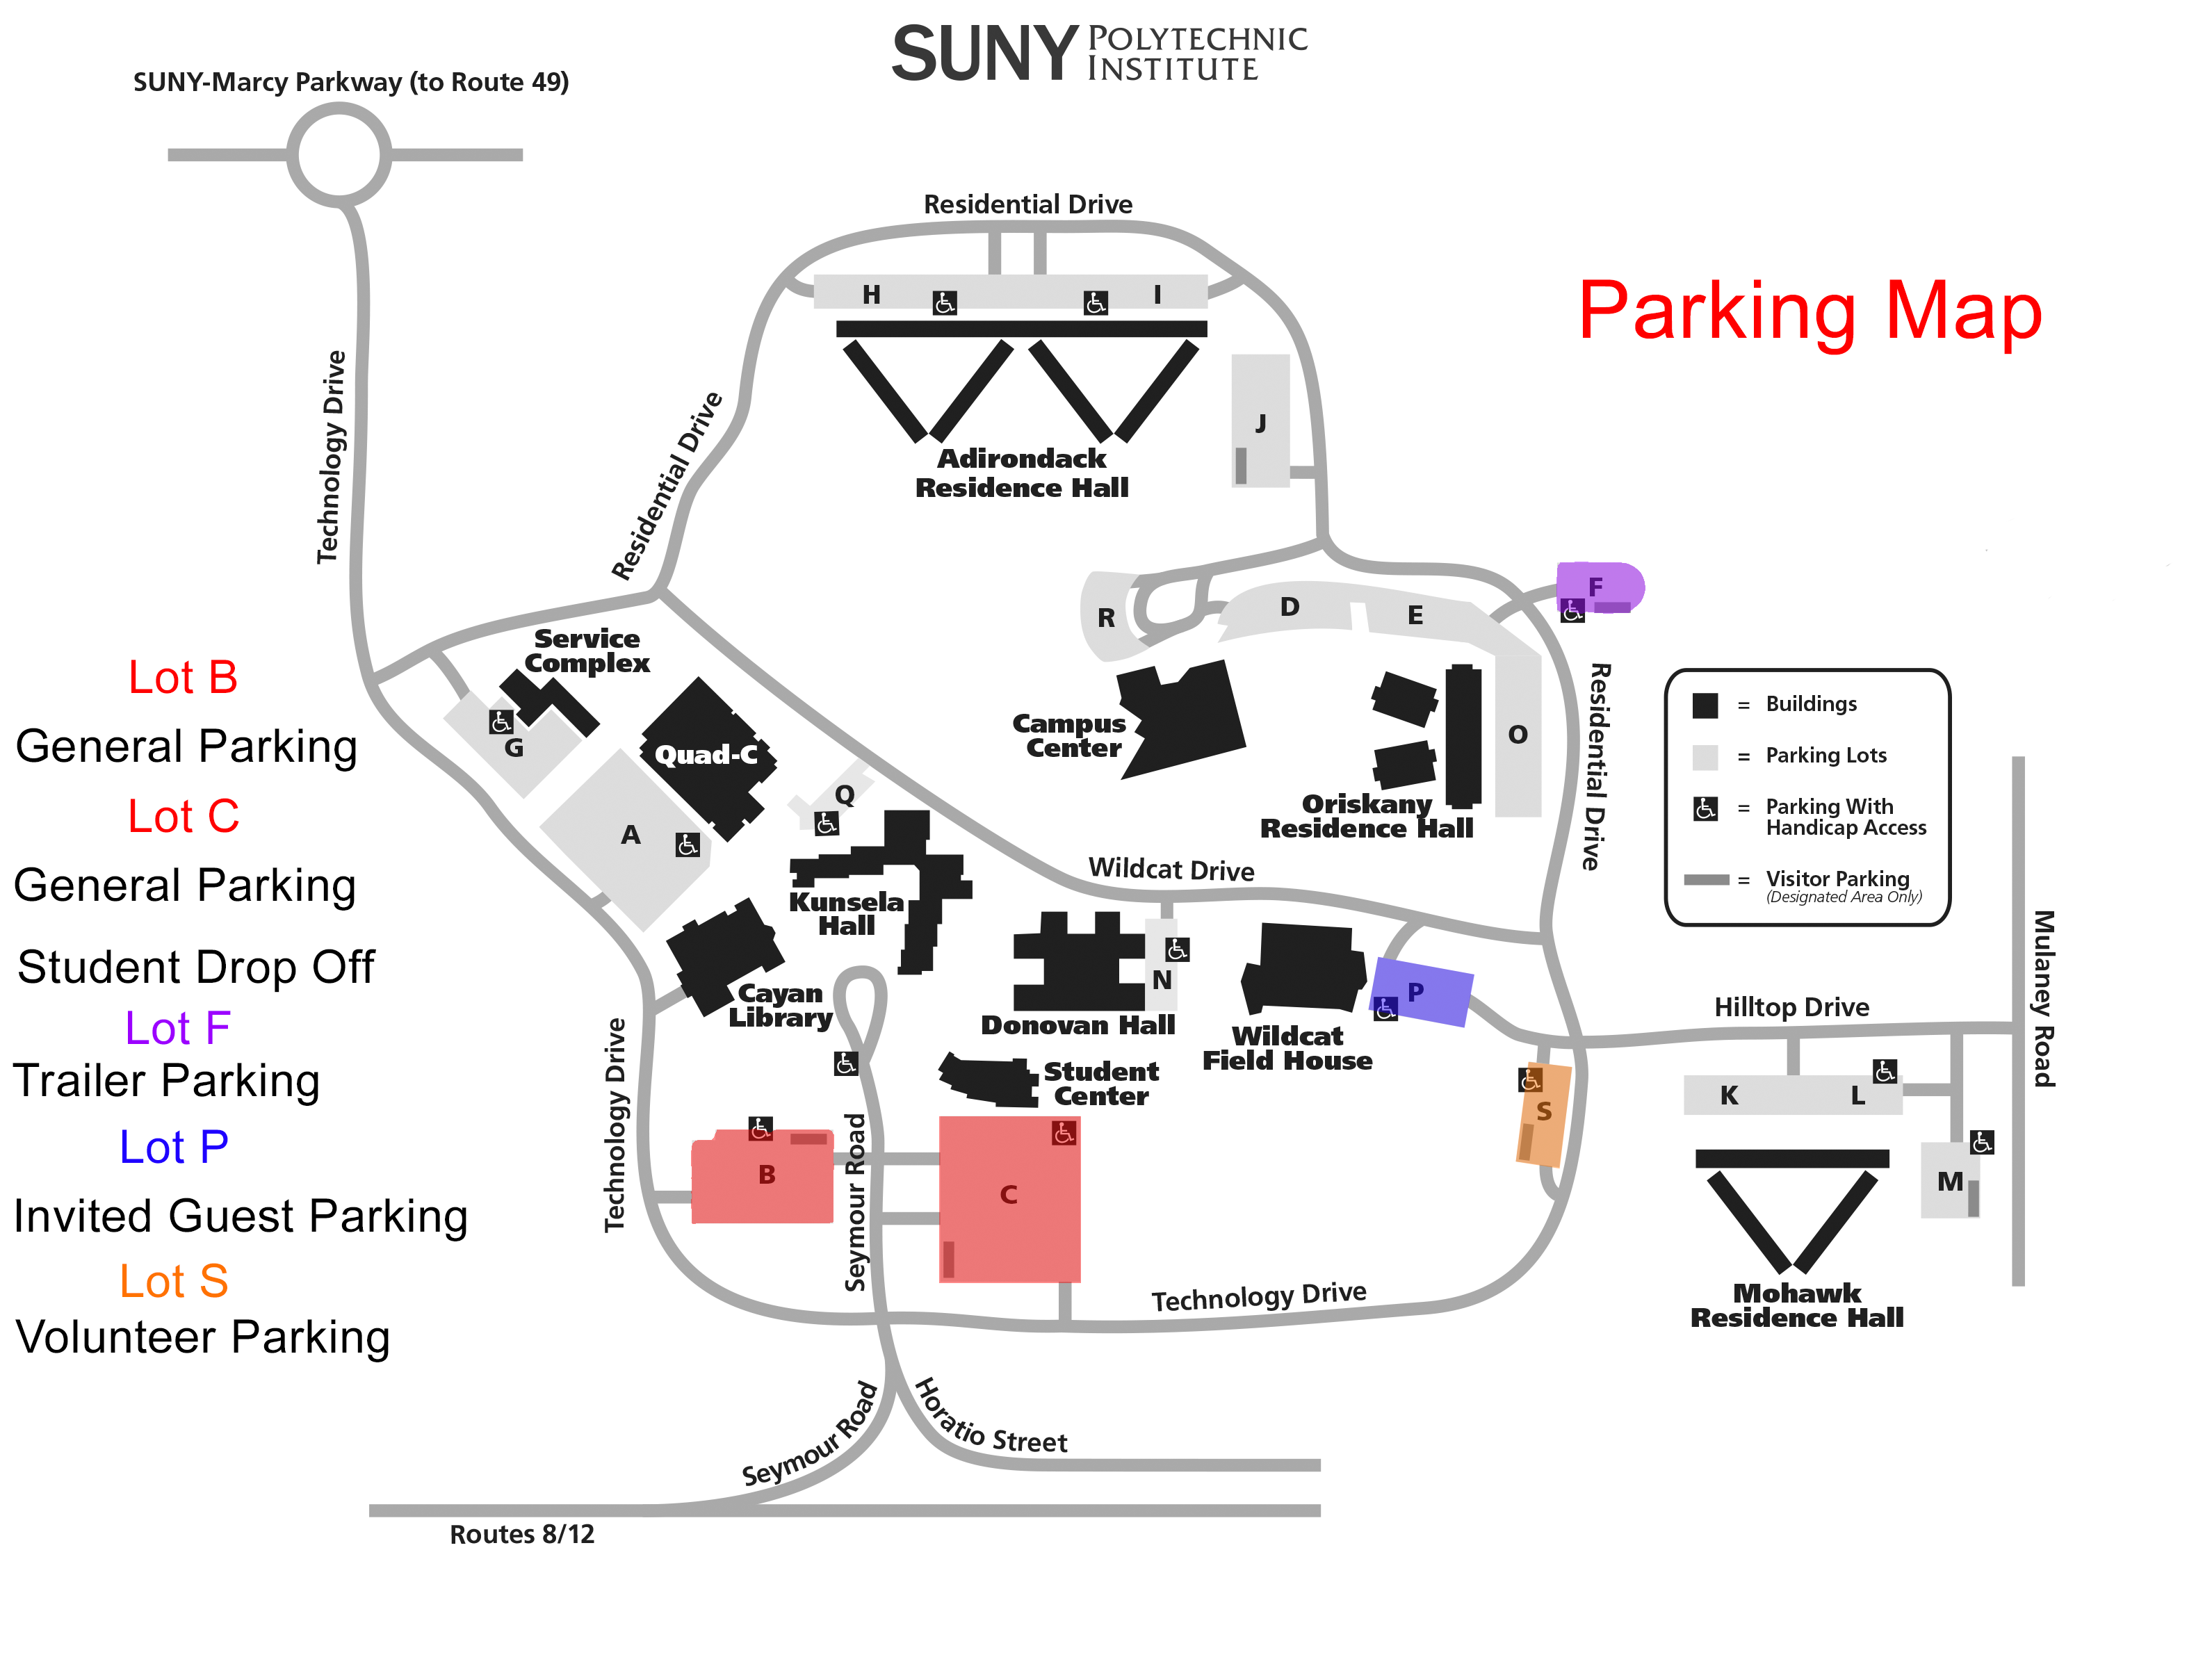 Directions and Maps | SUNY Polytechnic Insute on get directions, giving directions, compass directions, travel directions, mapquest directions, driving directions, traffic directions, scale directions,